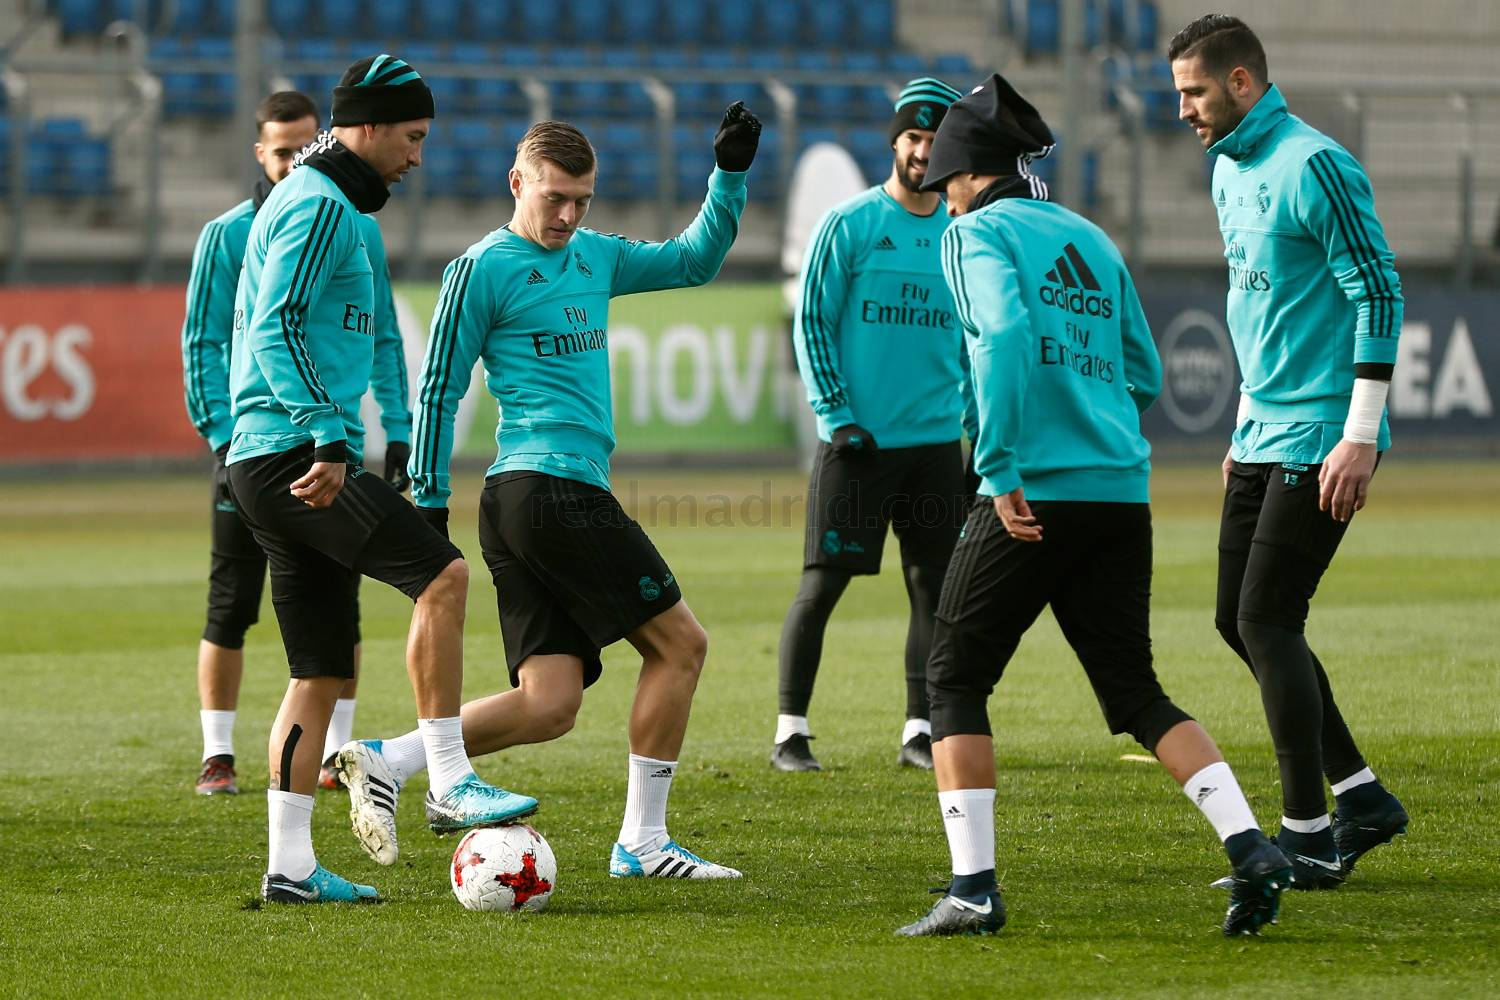 Real Madrid - Entrenamiento del Real Madrid en el estadio Santiago Bernabéu - 03-01-2018